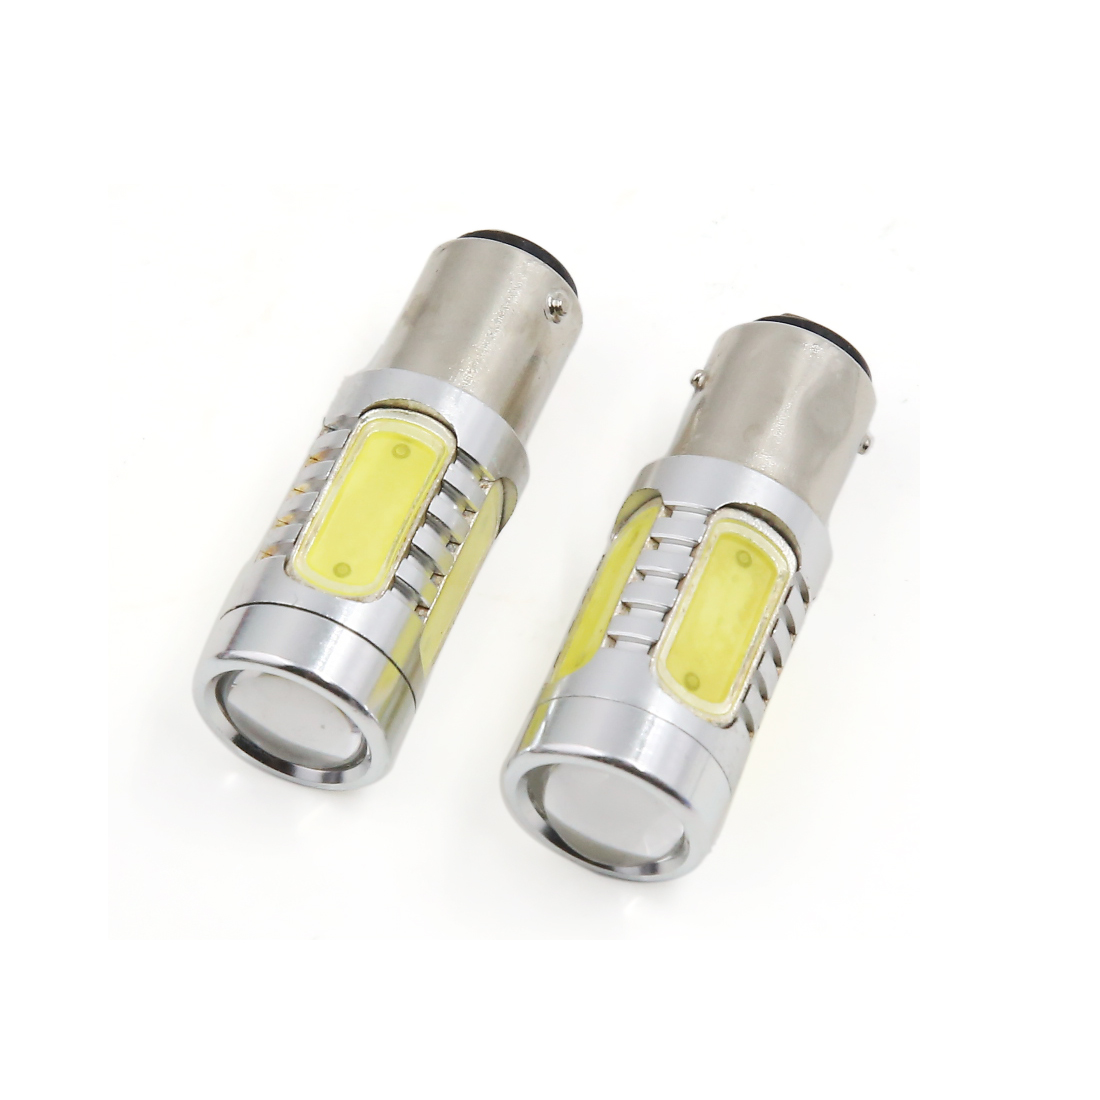 2 Pcs 1156 SMD LED White Turn Signal Light Direction Indicator Bulb 7.5W for Car